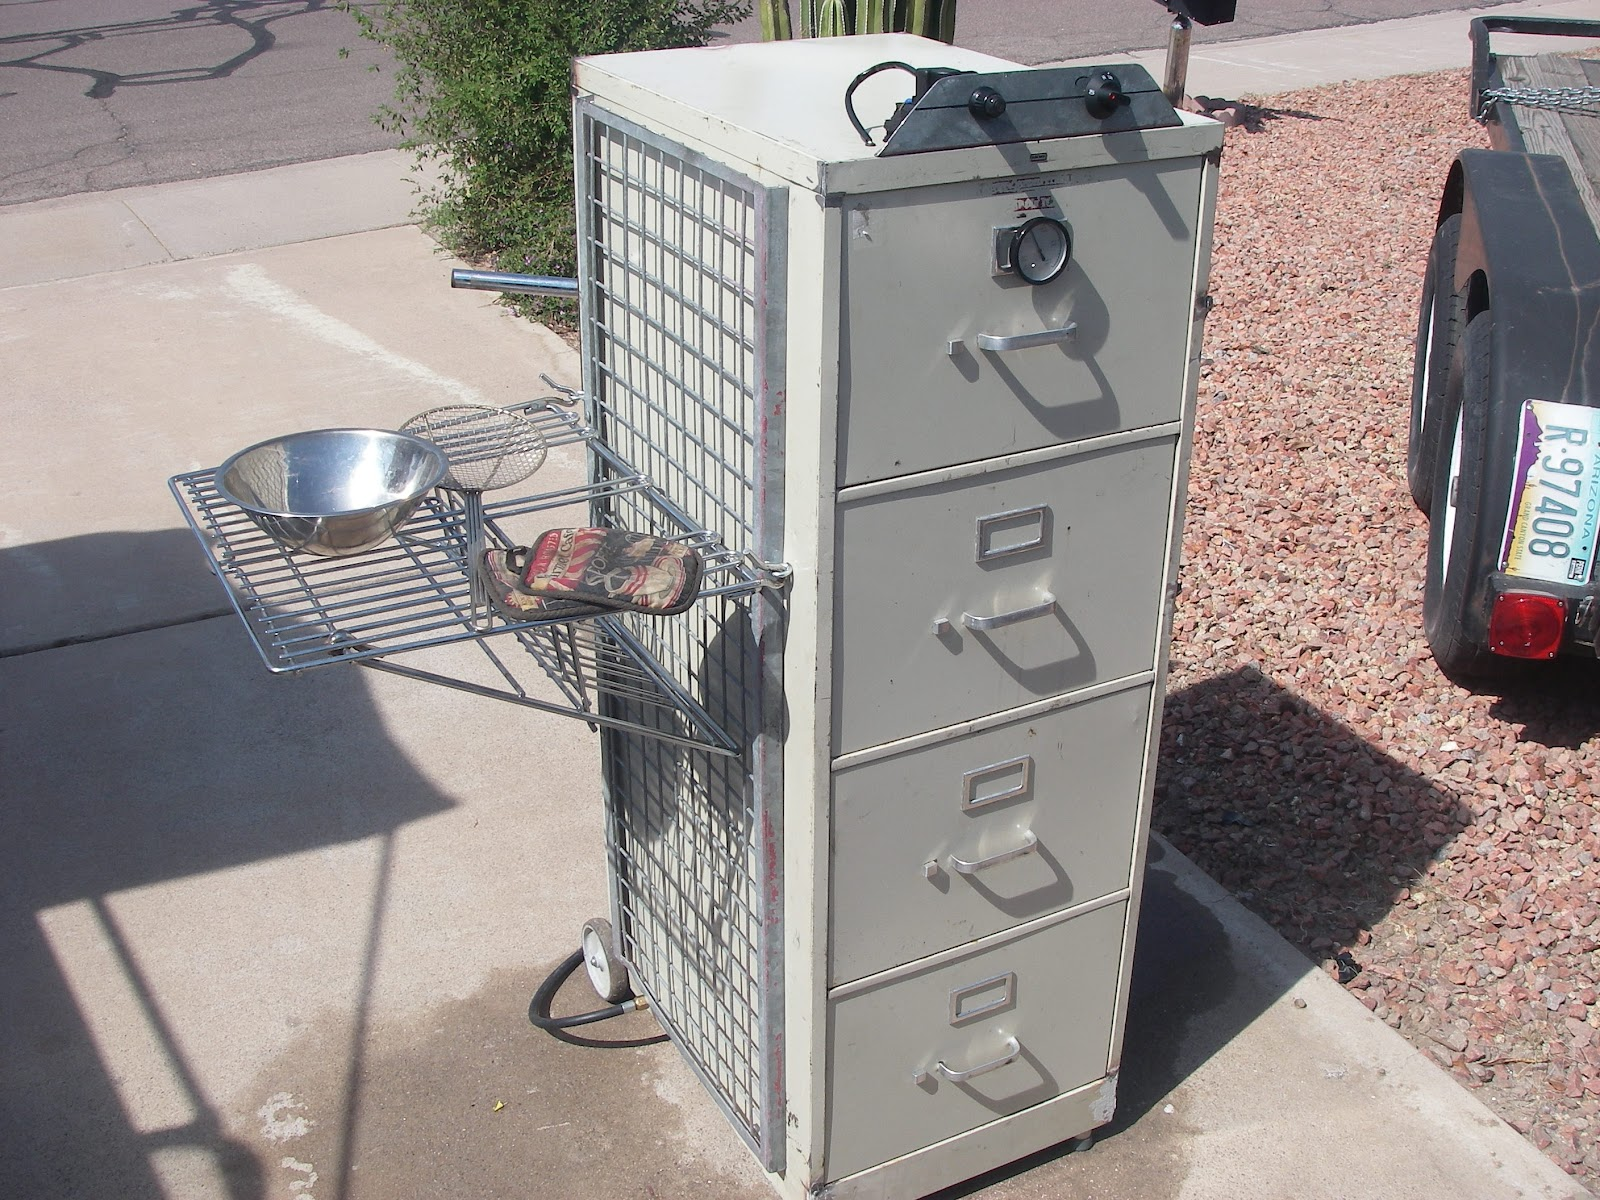 15 Homemade Smokers To Add Smoked Flavor To Meat Or Fish on Homemade Propane Tank Rocket Stove